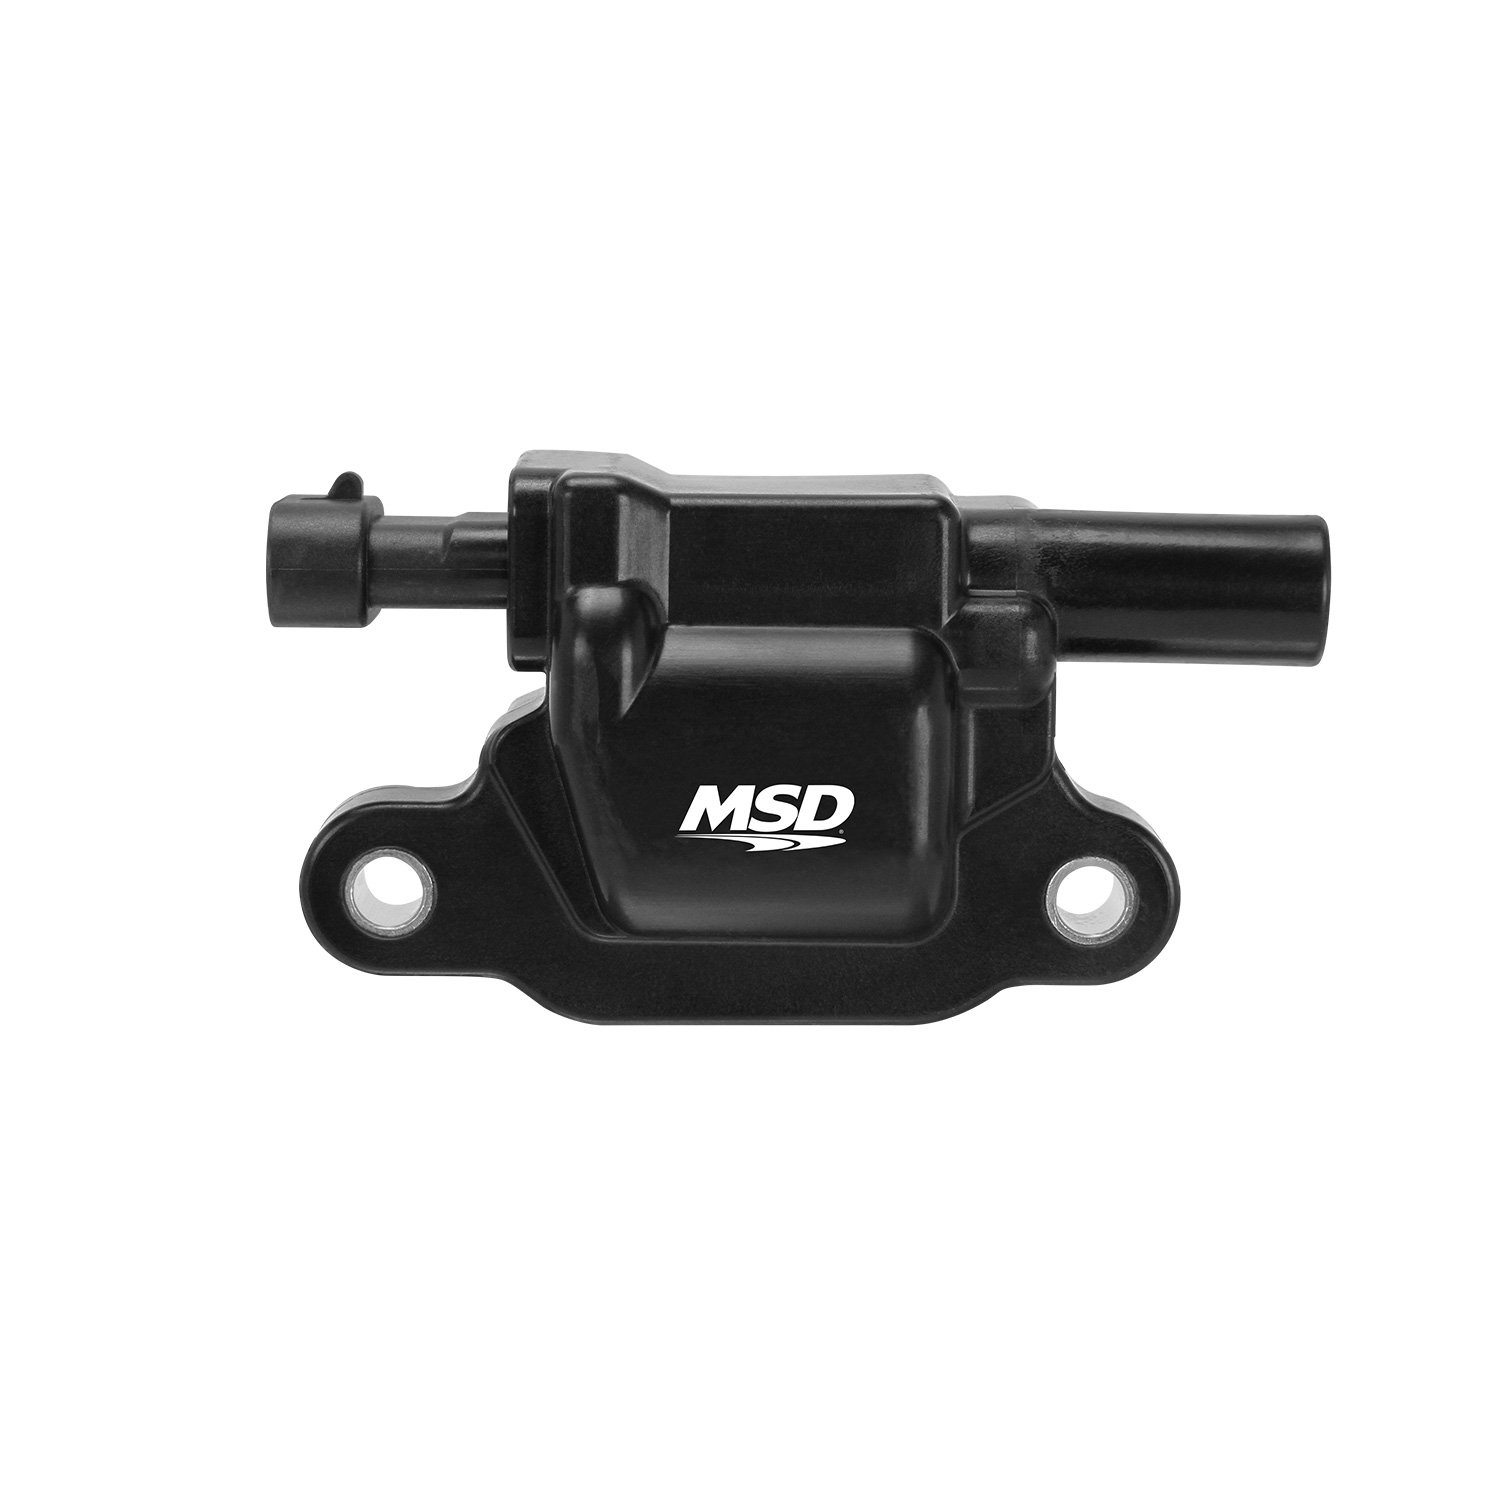 82653 - MSD Black GM L-Series Truck Single Coil, '05-'09 Image